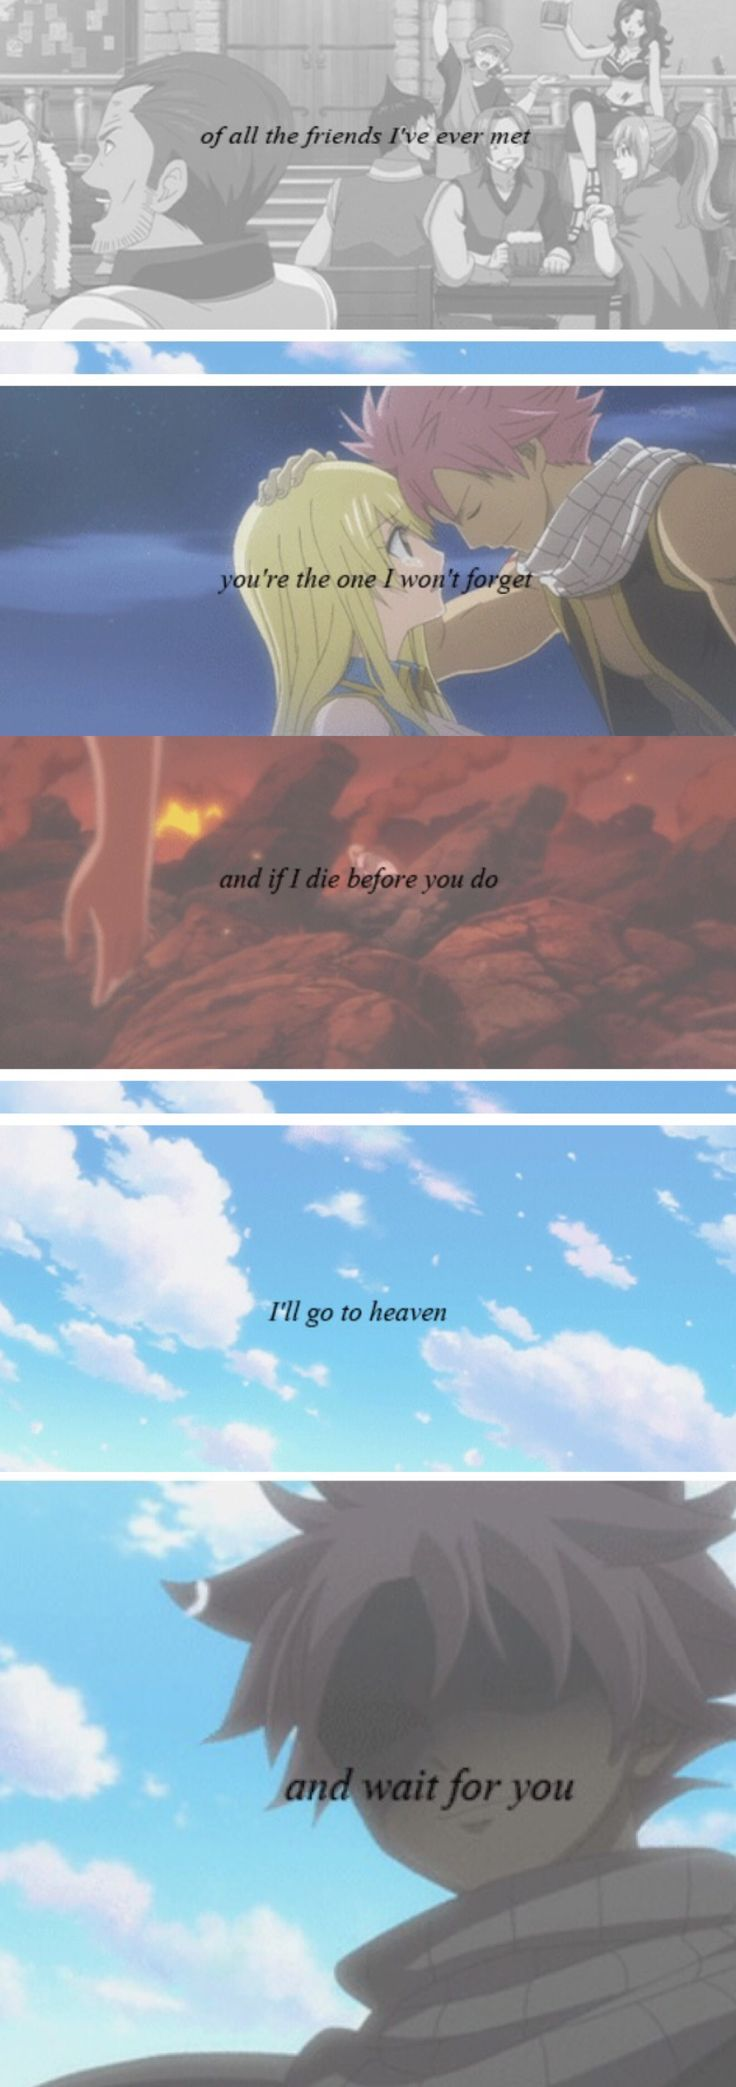 Oh look. There goes my soul.This reminded me of when future lucy died and I cried T.T